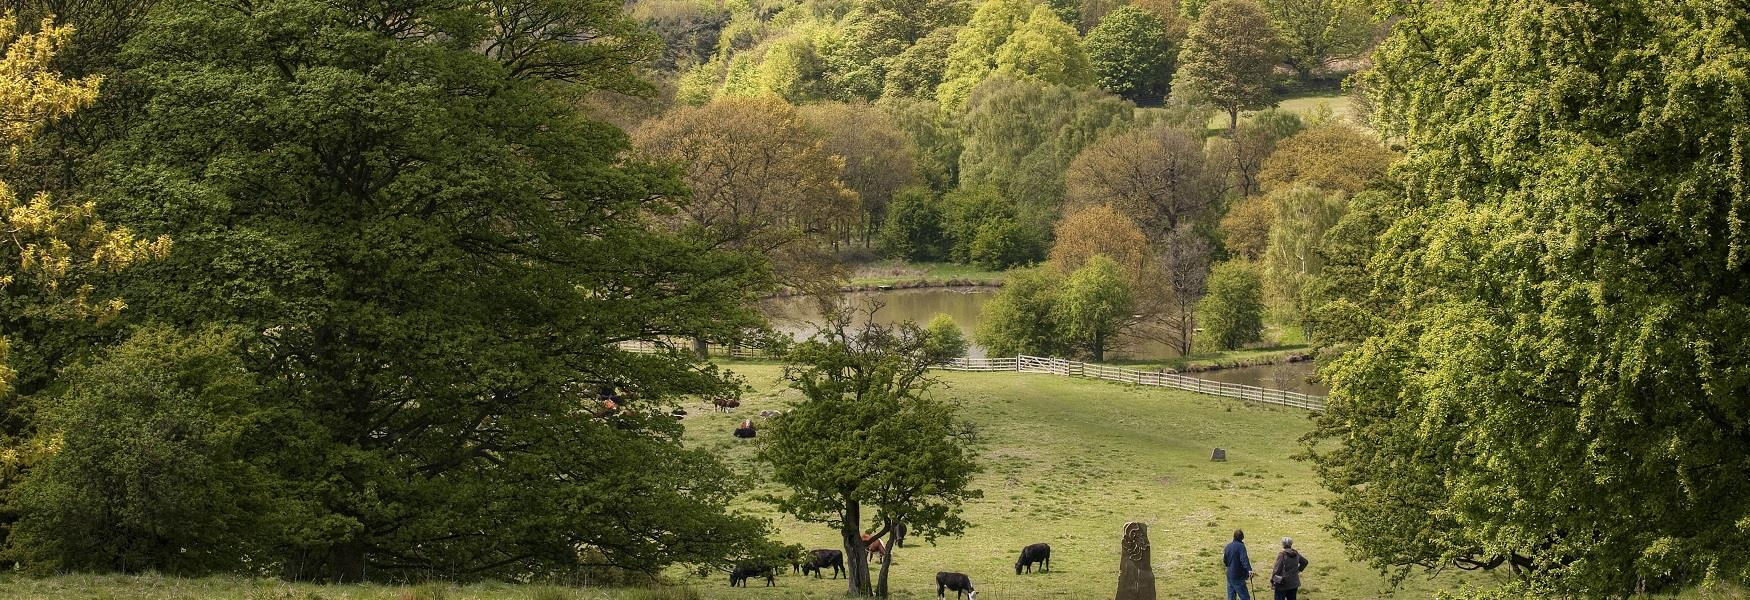 View of walkers in Hardwick Park with cattle grazing